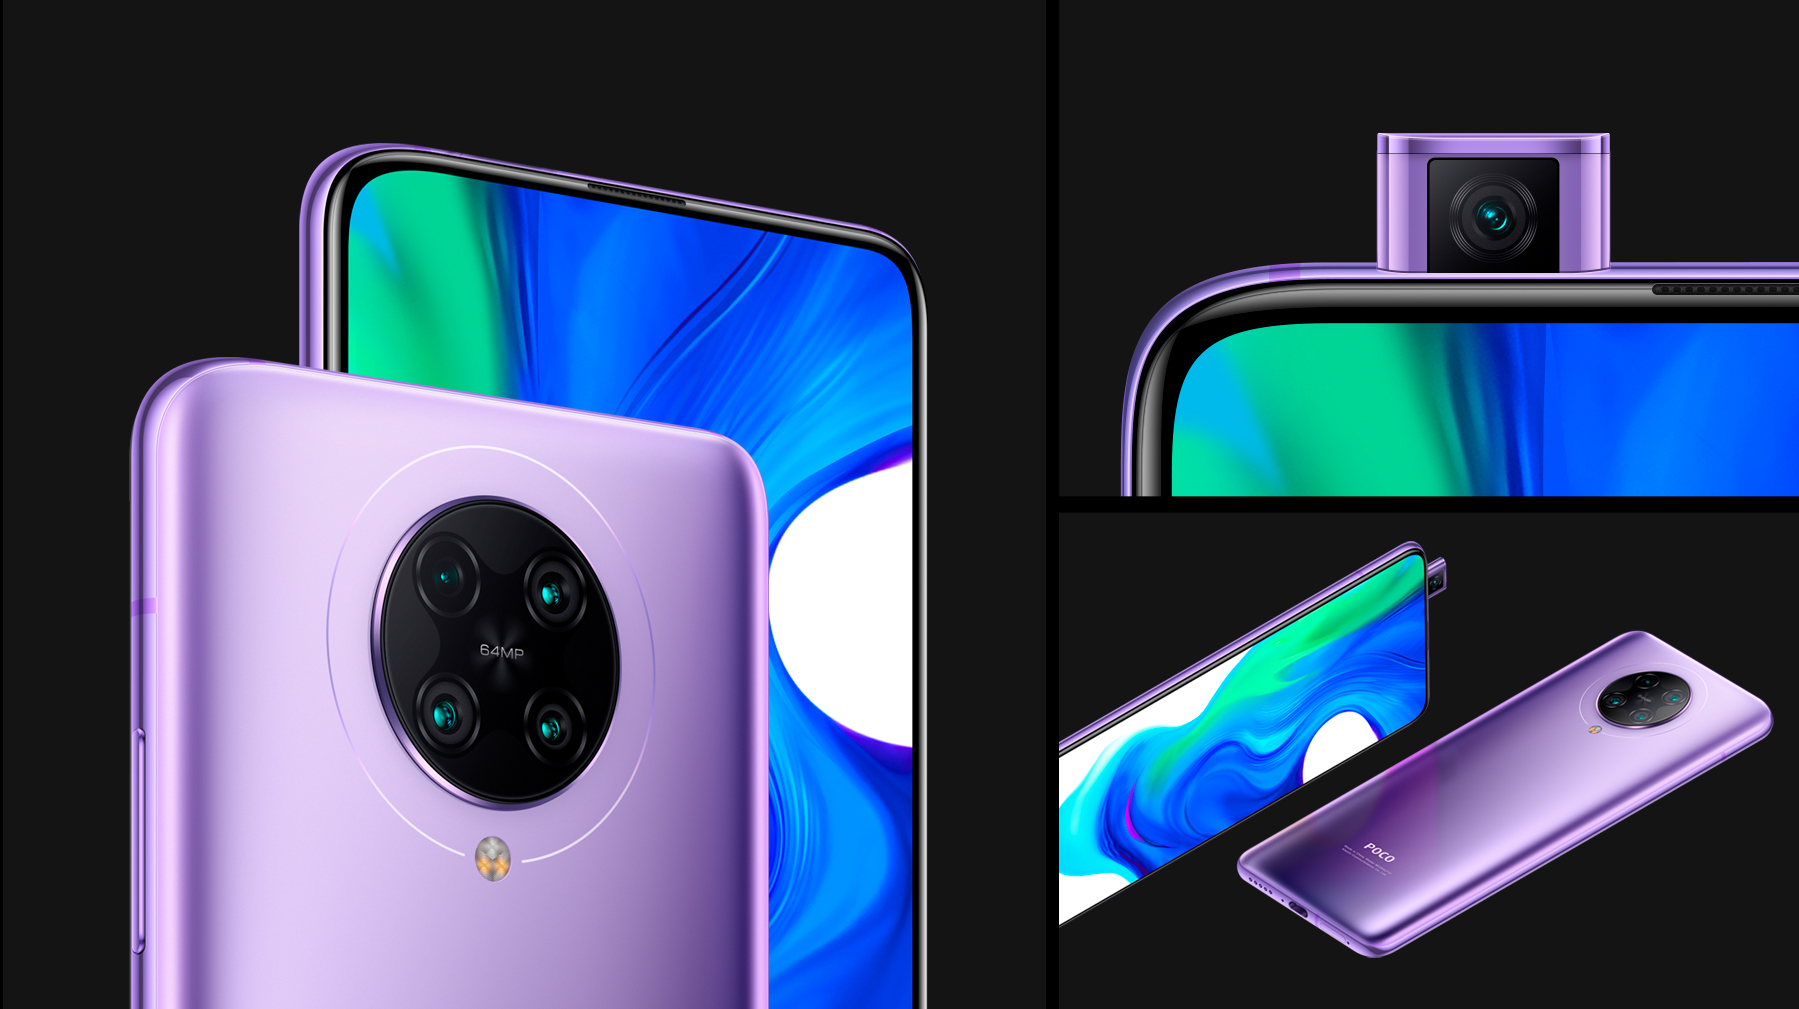 """Poco F2 Pro: Xiaomi may have been misleading customers with its """"flagship killer pricing"""" - NotebookCheck.net News"""